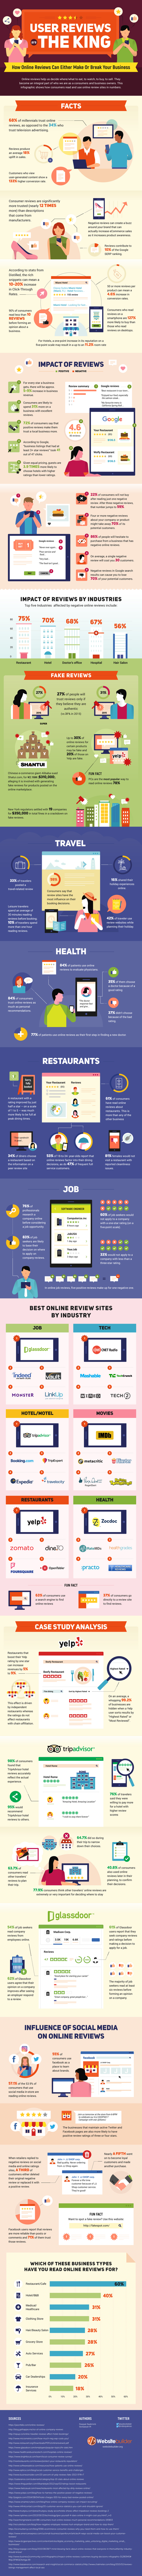 Online User Reviews Infographic